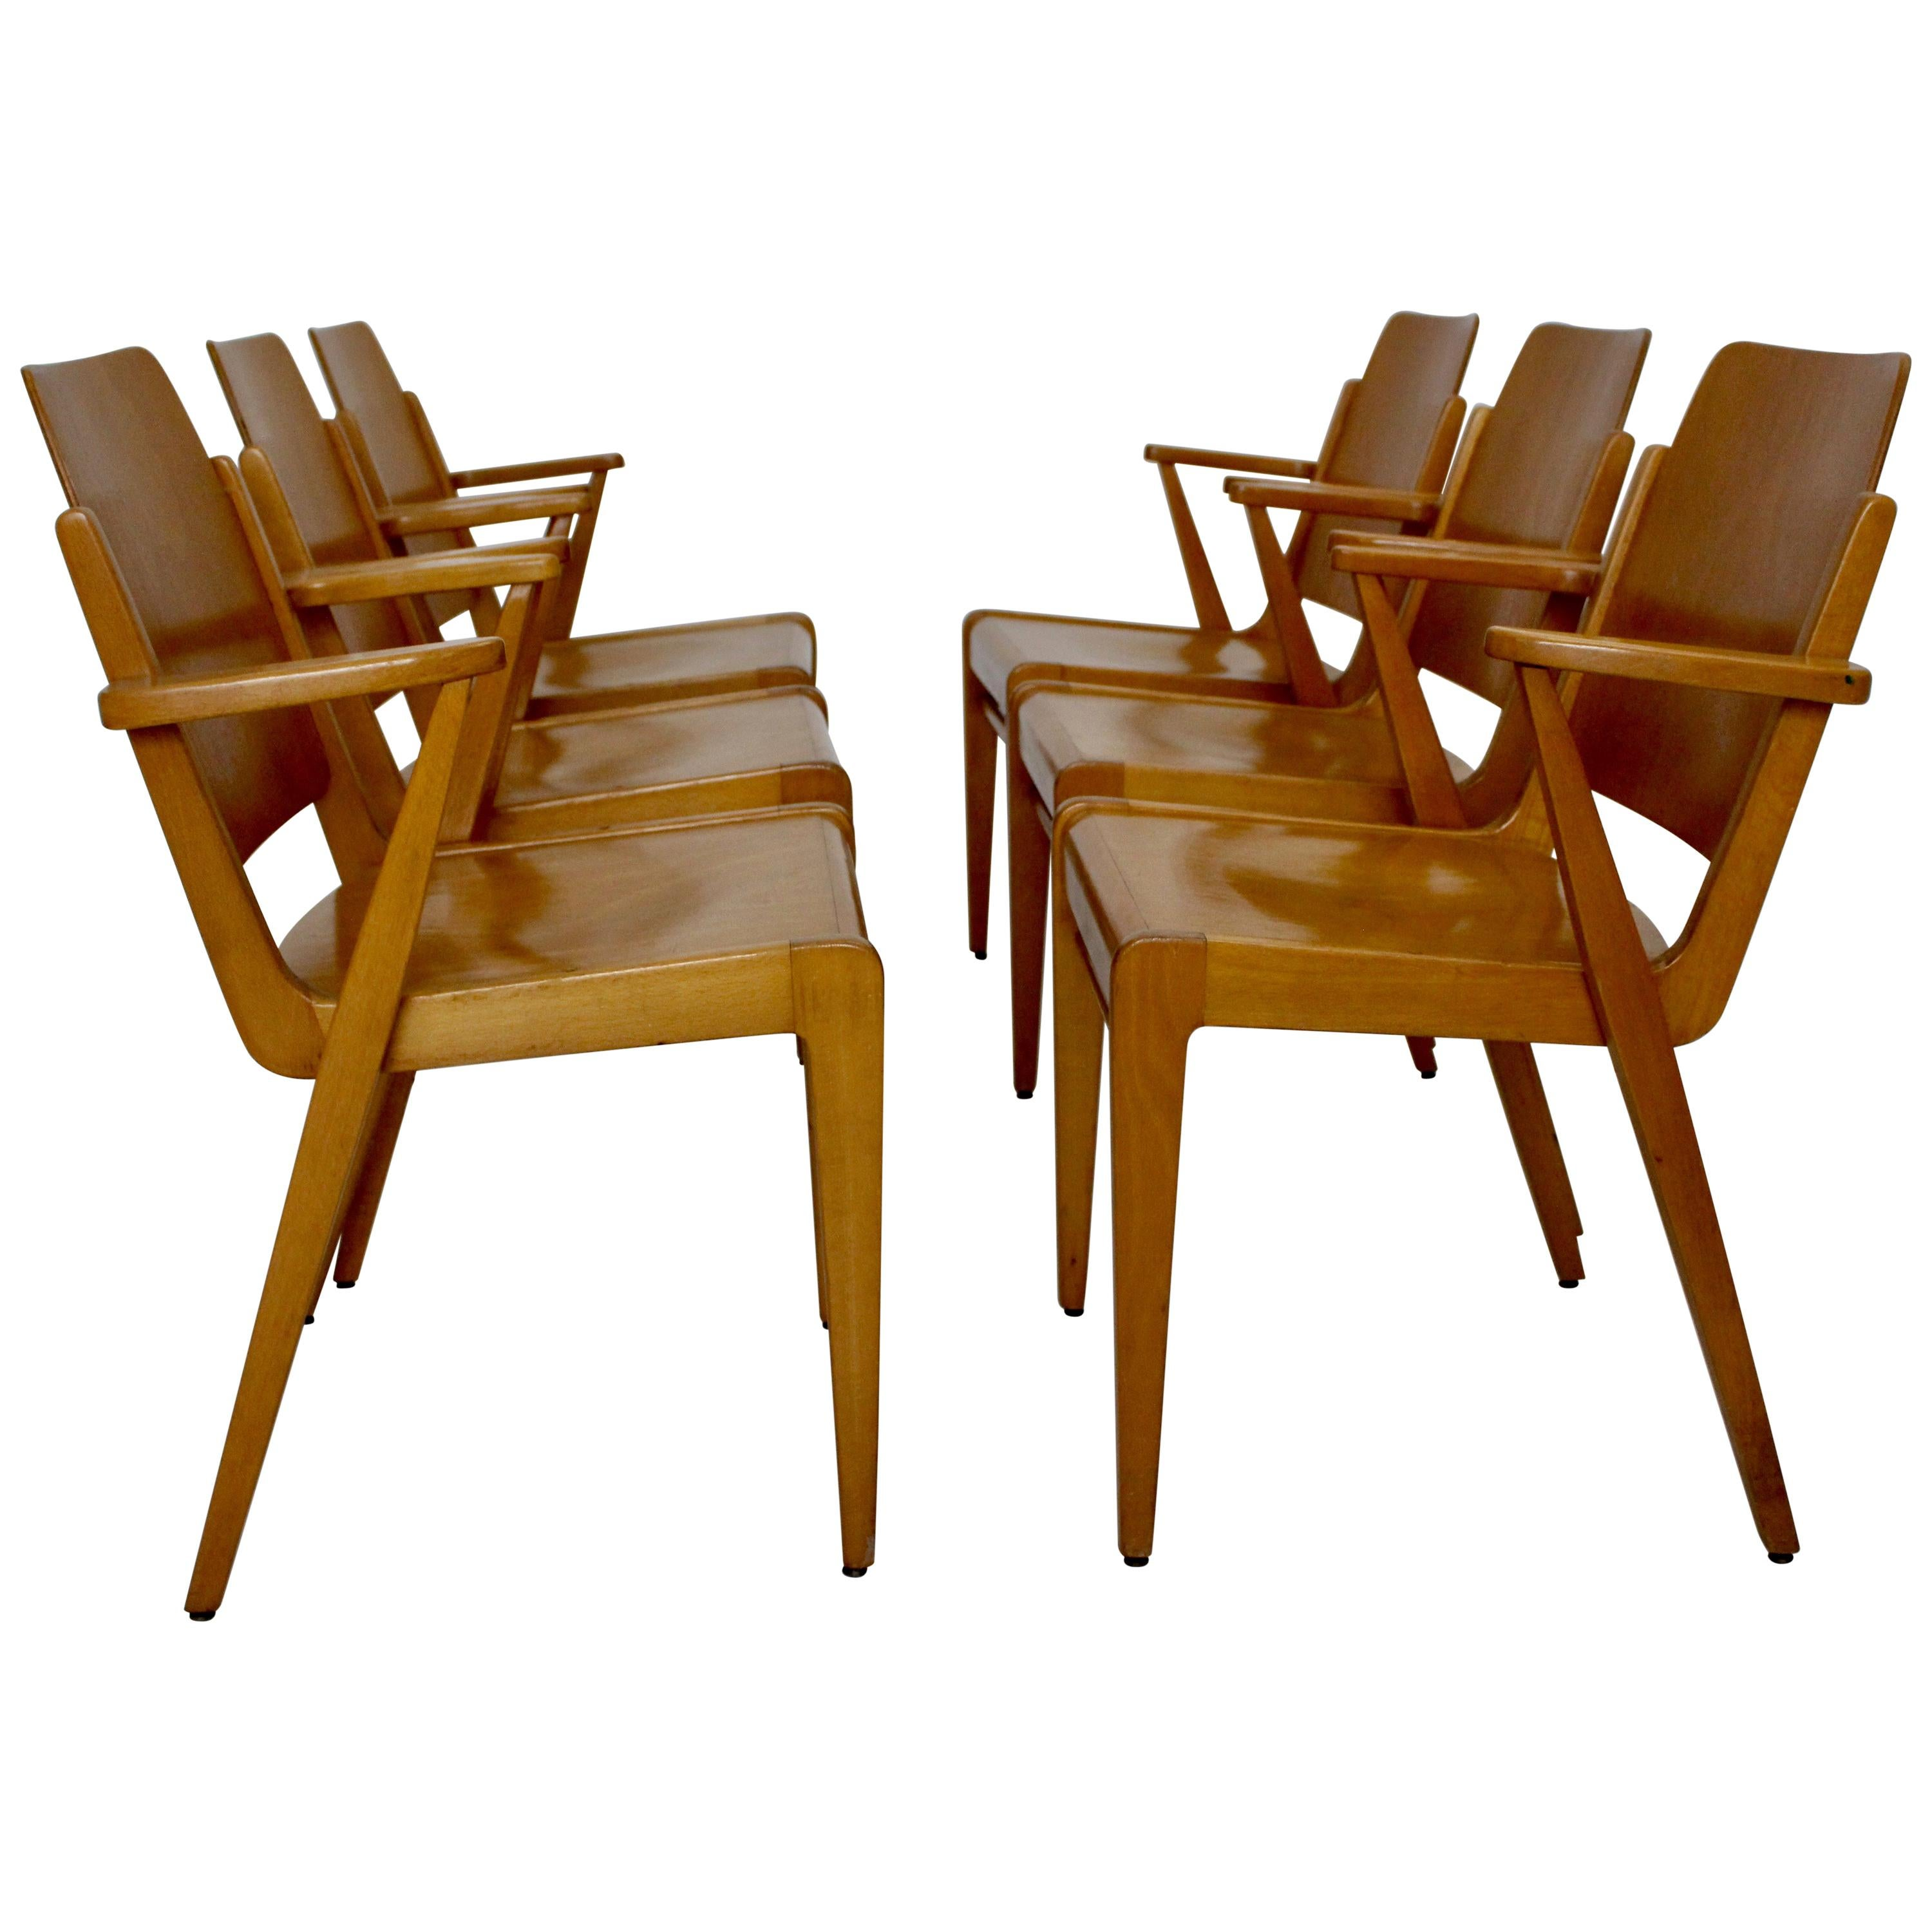 Beechwood dining room chairs austro by franz schuster vienna 1959 set of six for sale at 1stdibs